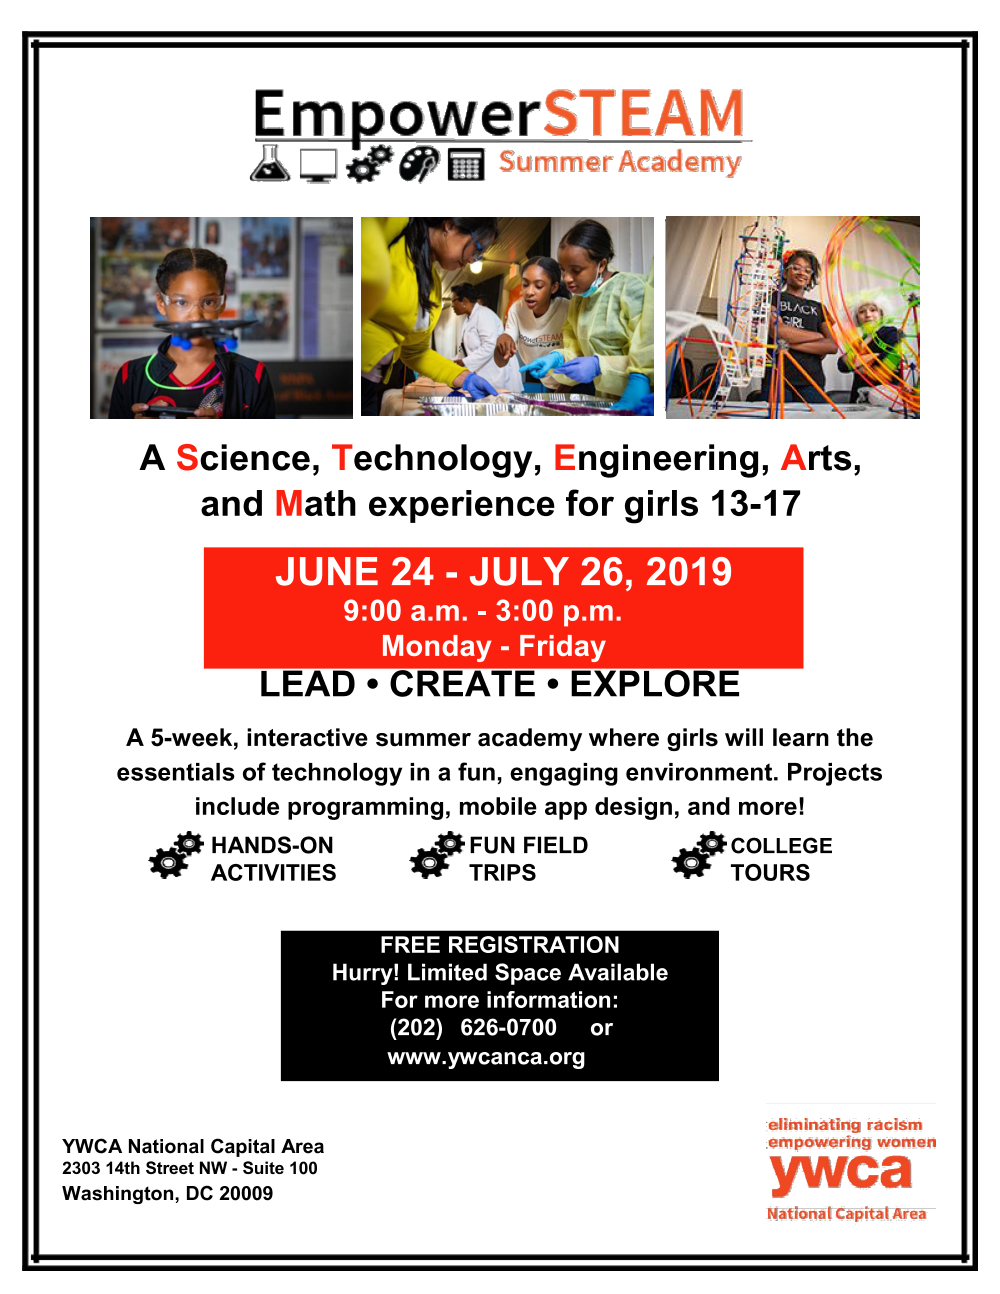 Flyer with photos and text to promote registration for EmpowerSTEAM Summer Academy.